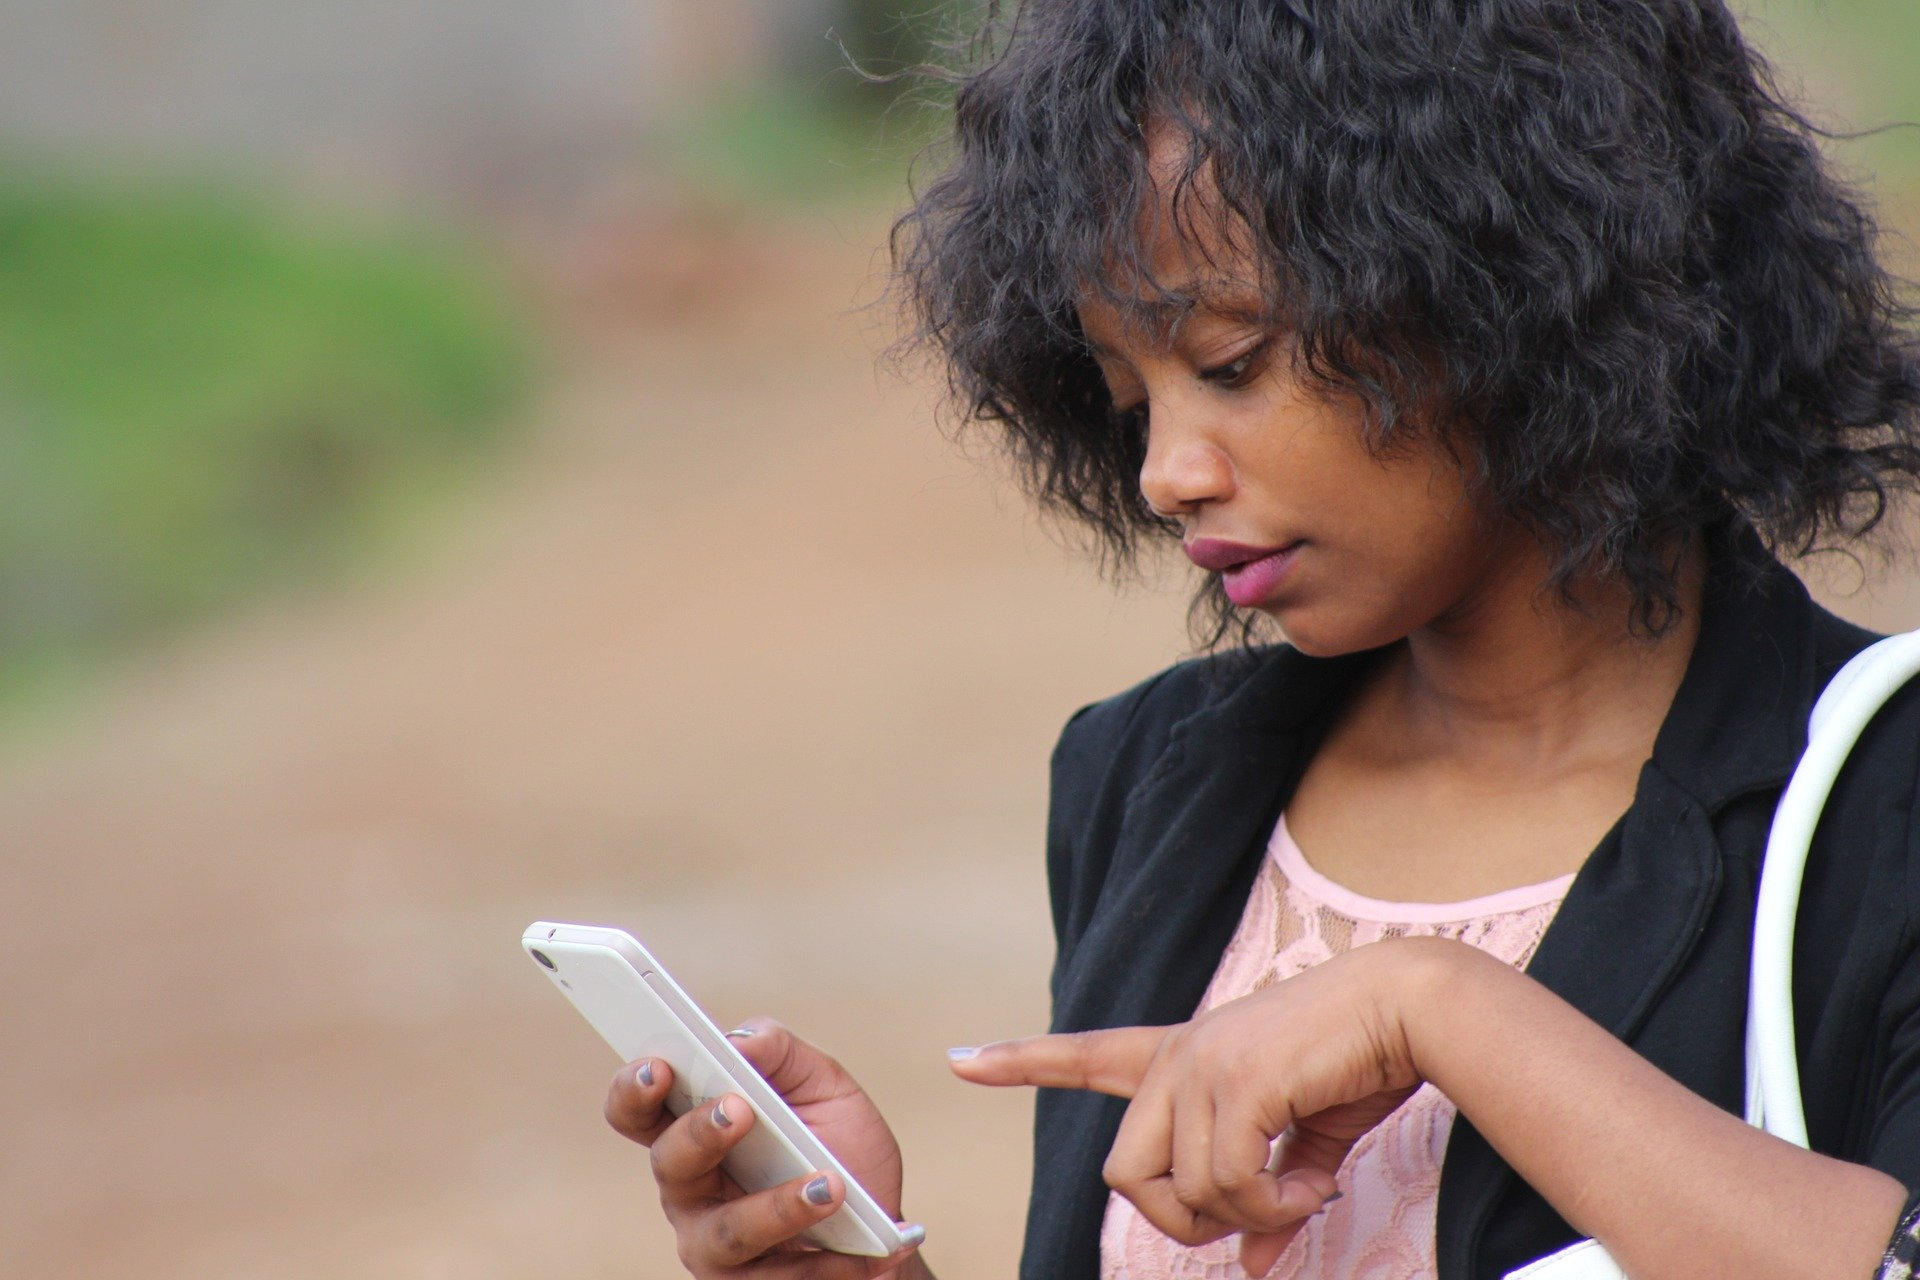 A woman operates her smartphone.